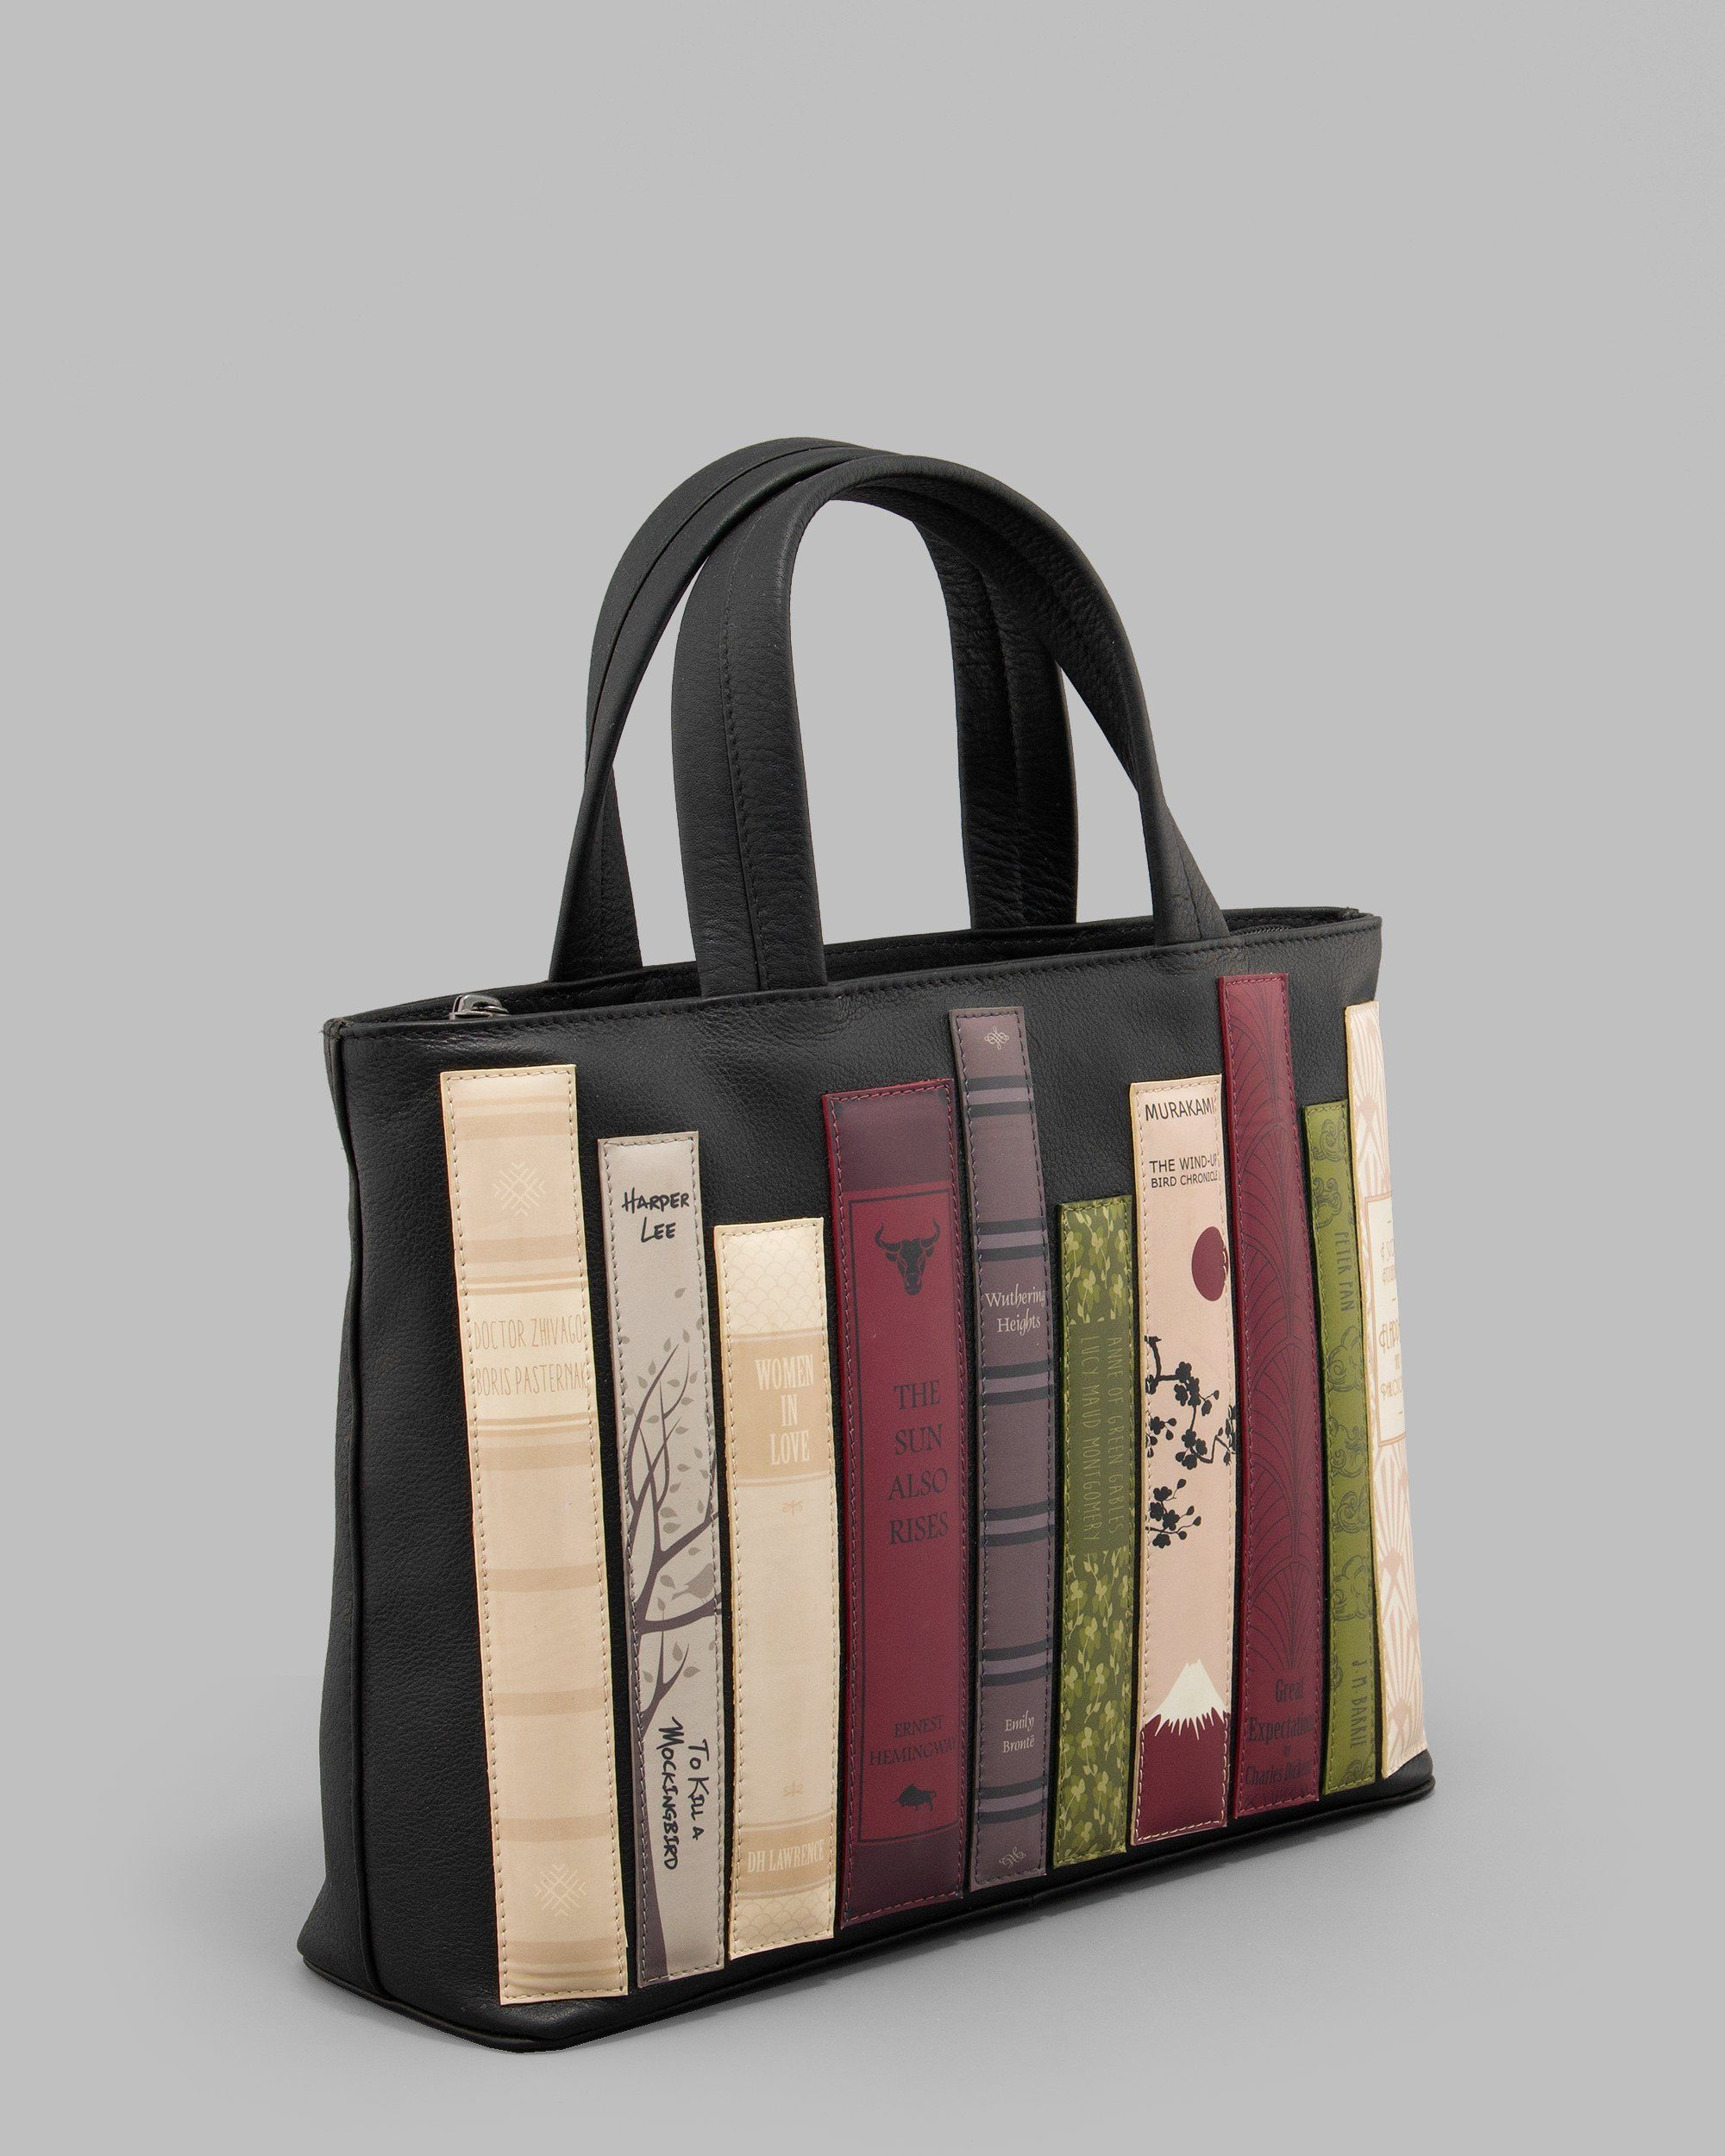 Bookworm Library Black Leather Las Grab Bag By Yoshi Womens Handbag With Book Liques Is A Perfect Gift And Present For Any Author Writer